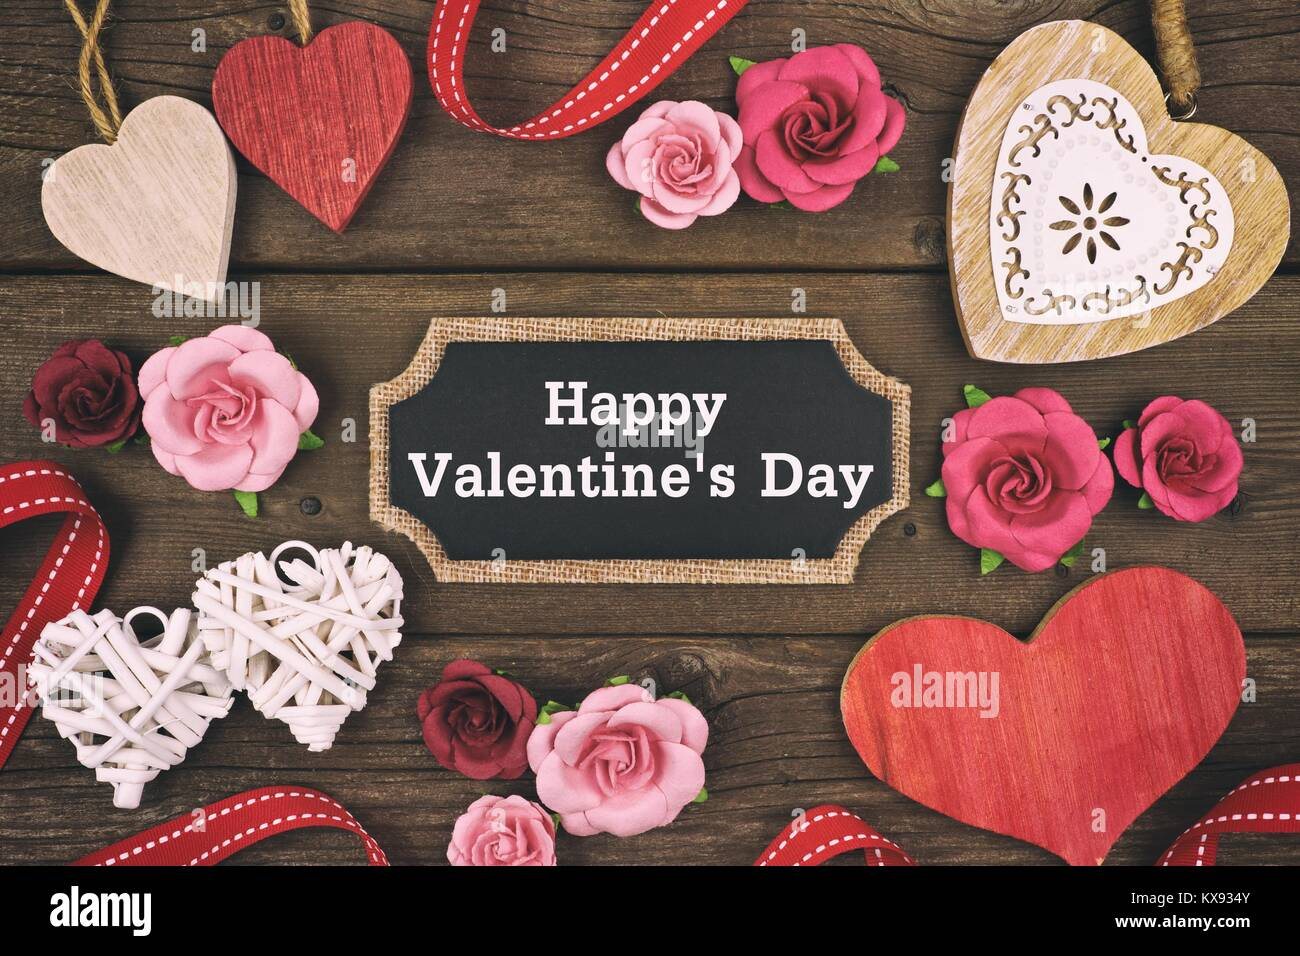 Happy Valentines Day Message On A Chalkboard Tag With Frame Of